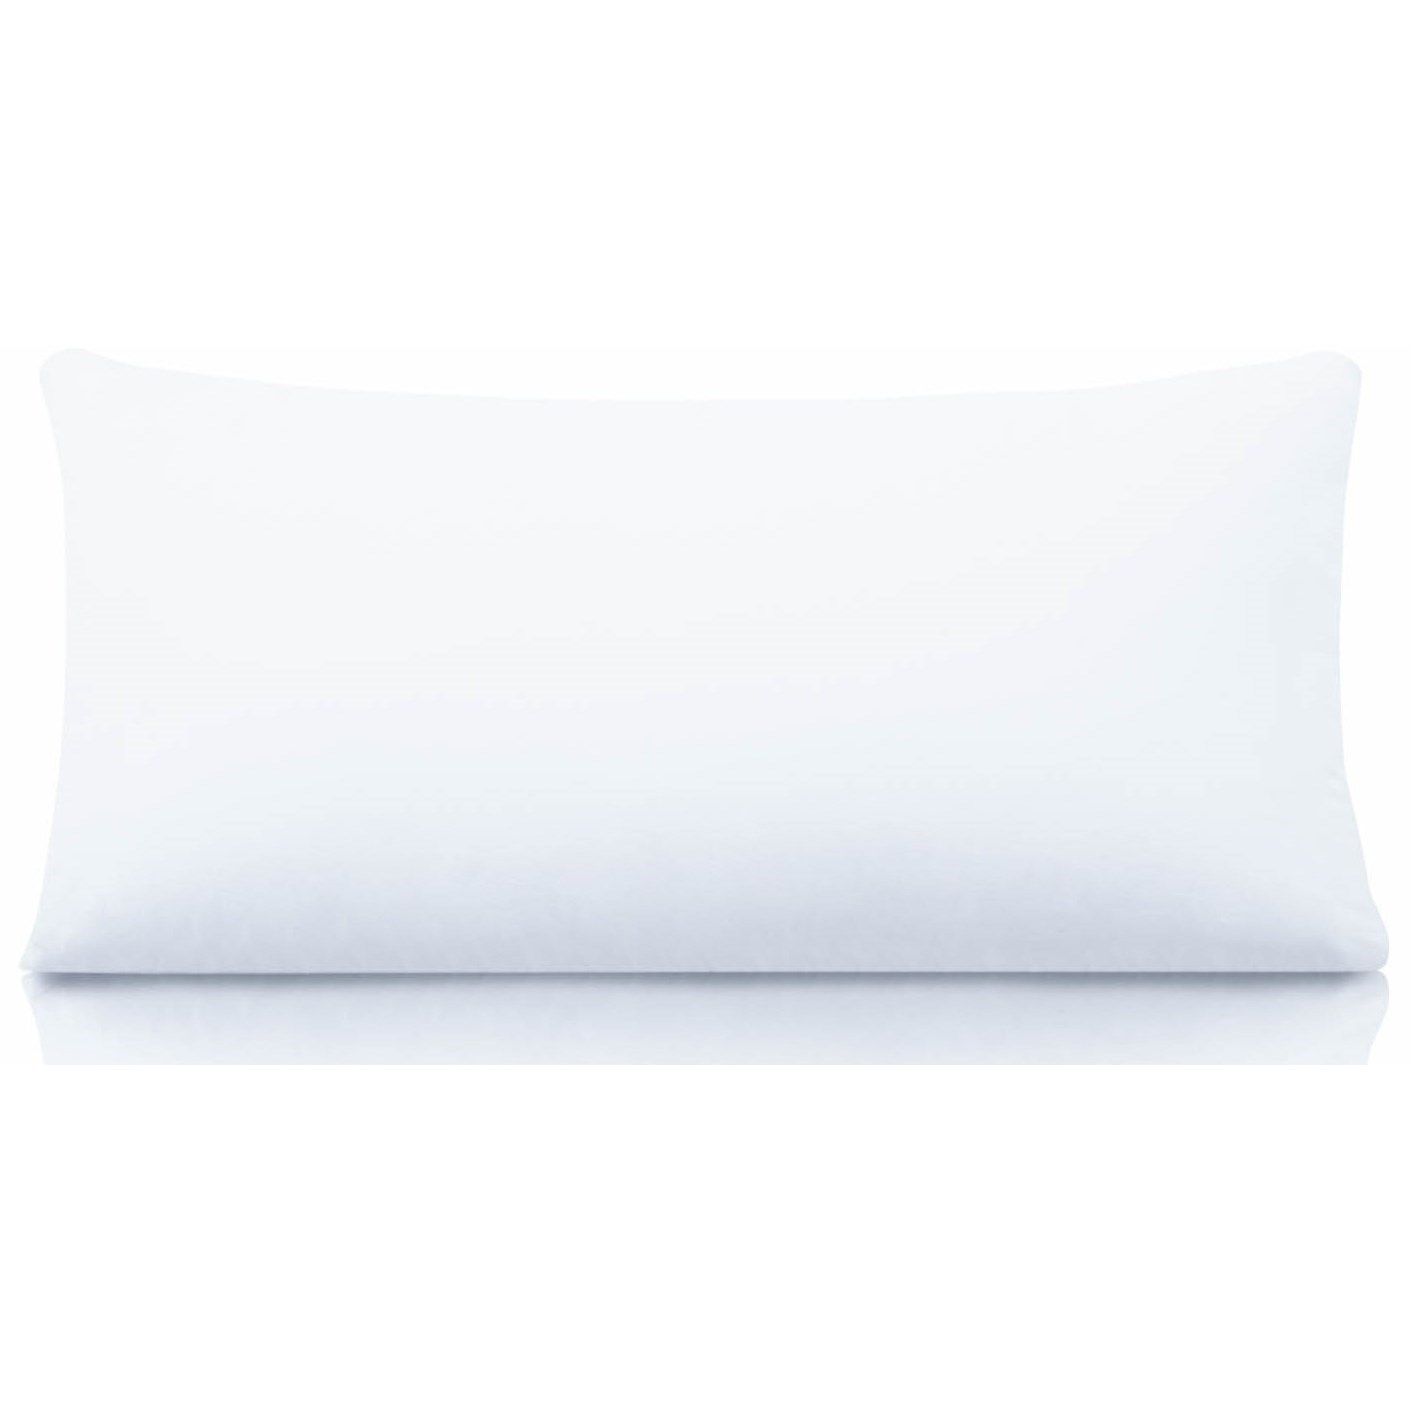 Cotton Encased Down King Cotton Encased Down Blend Pillow by Malouf at Standard Furniture